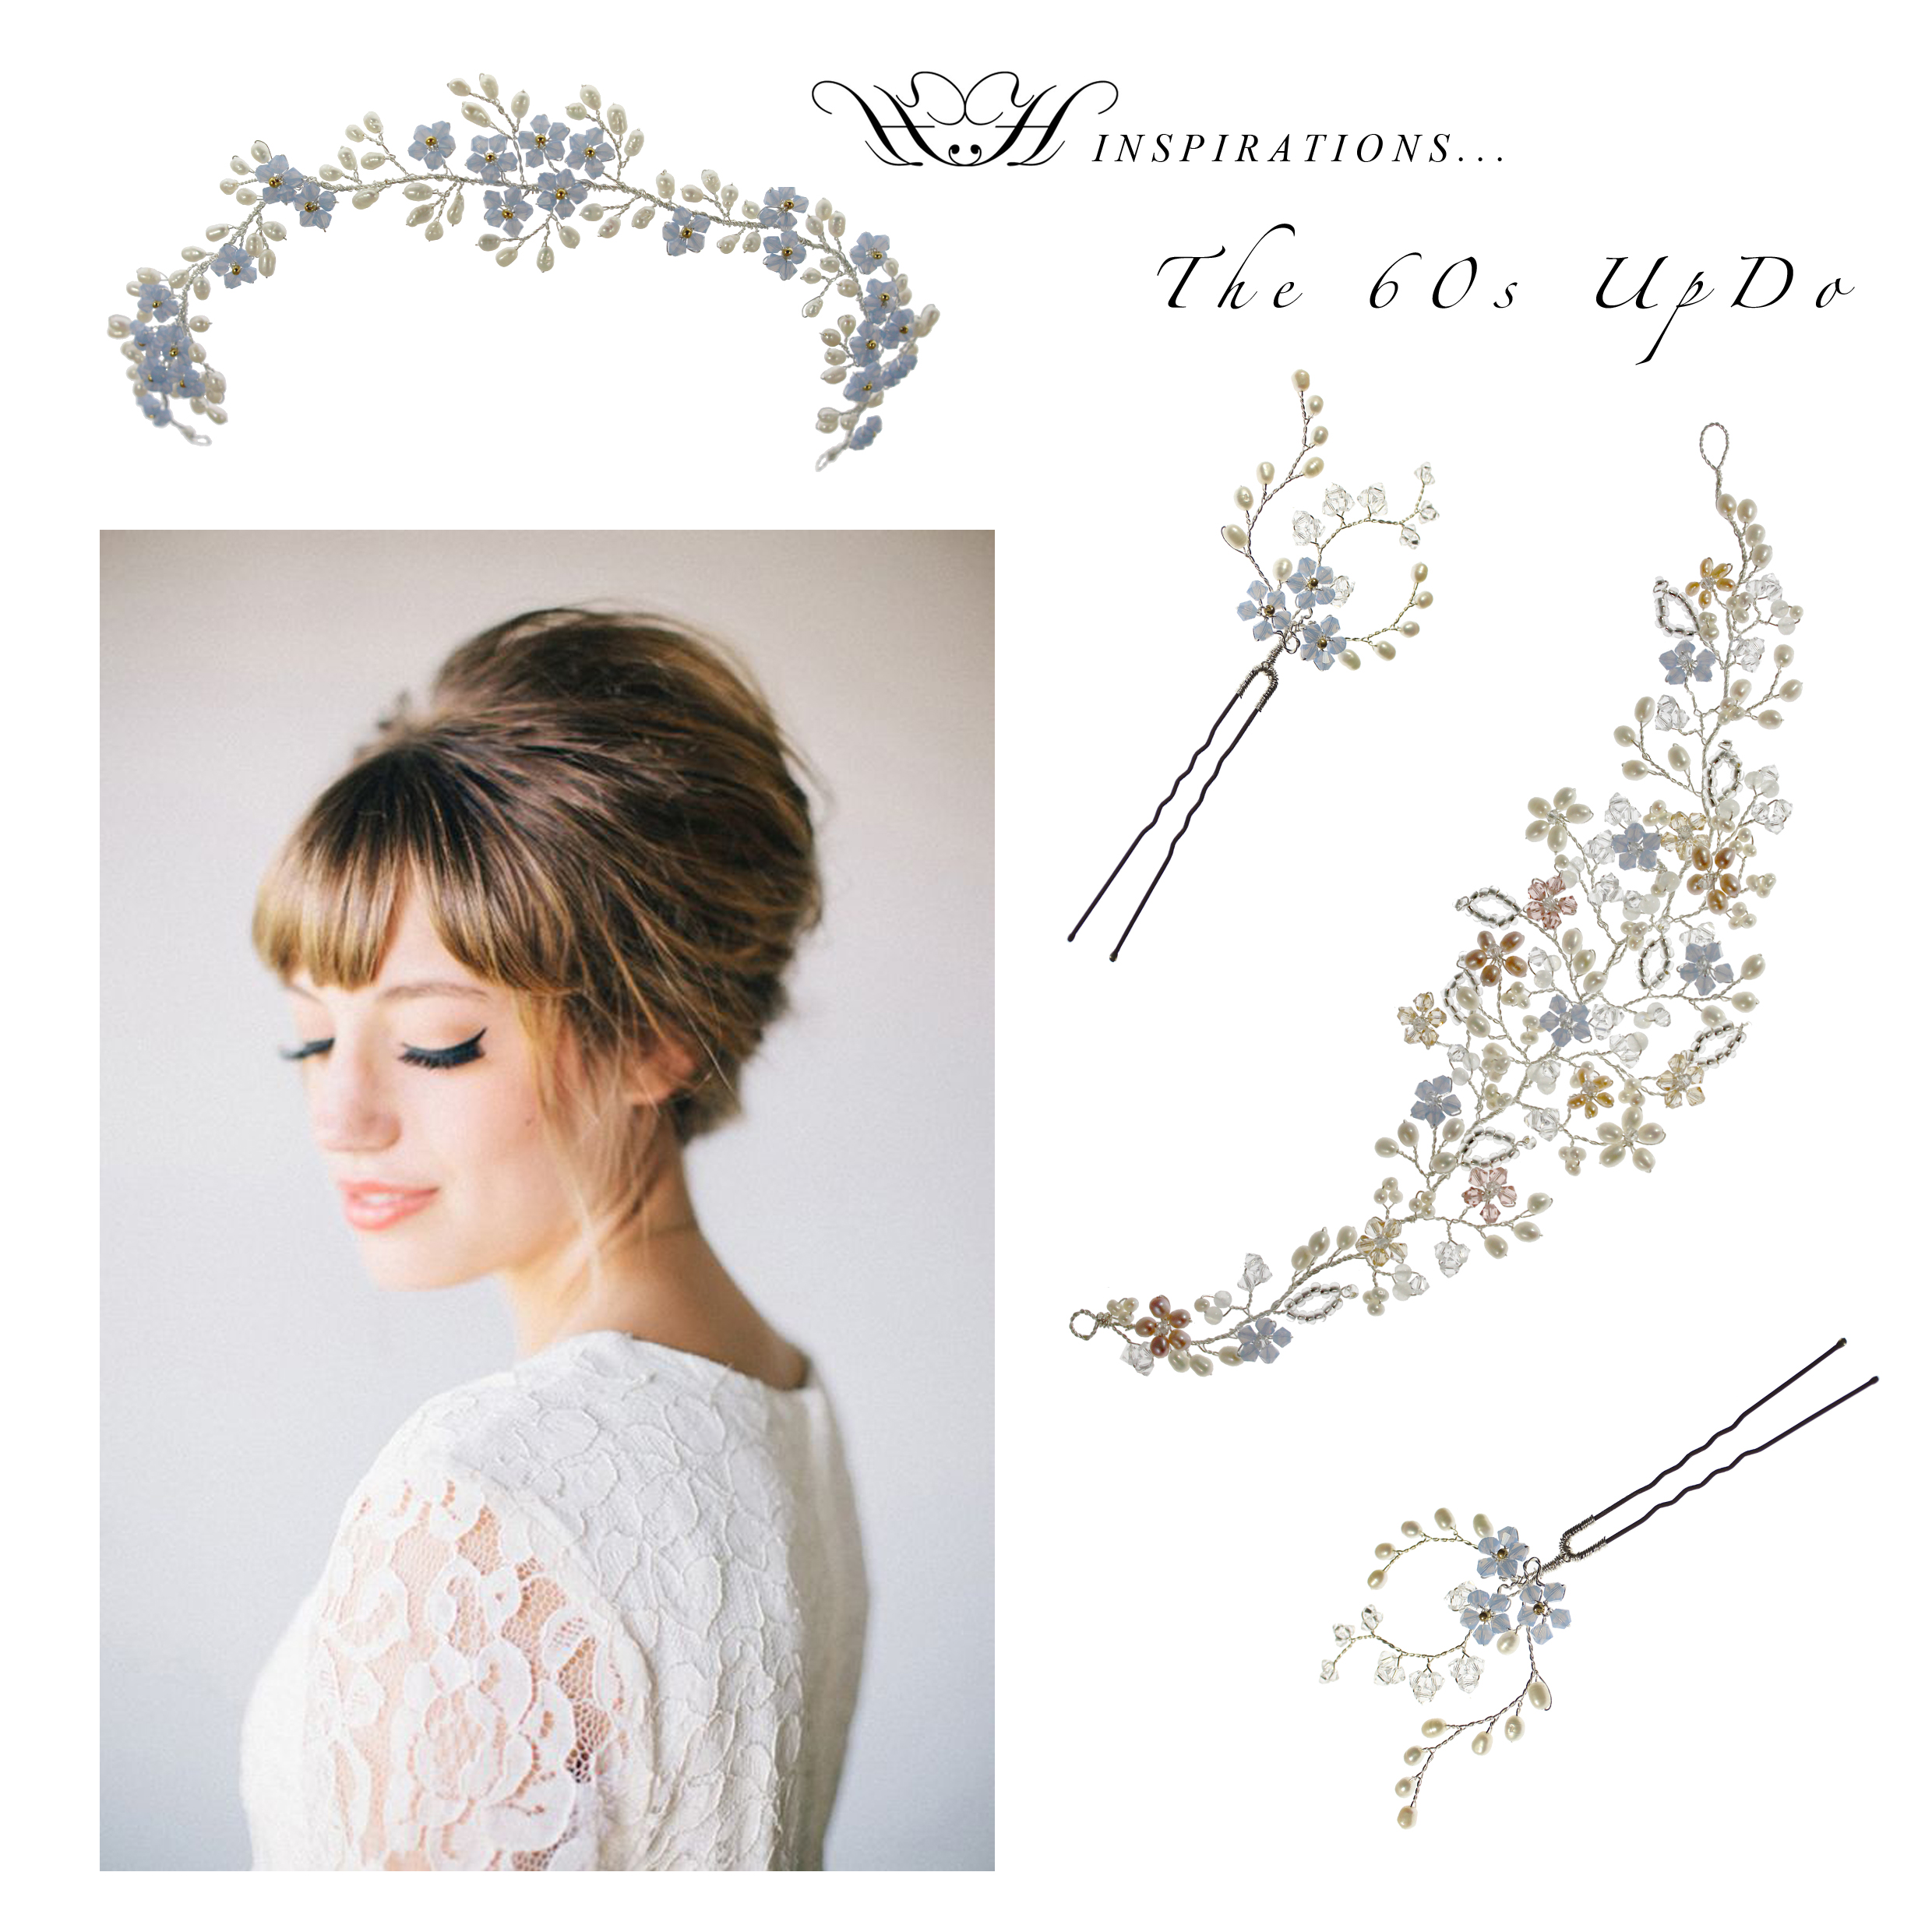 Wedding Hair Inspirations - The Fringes! - Wedding Hair Accessories